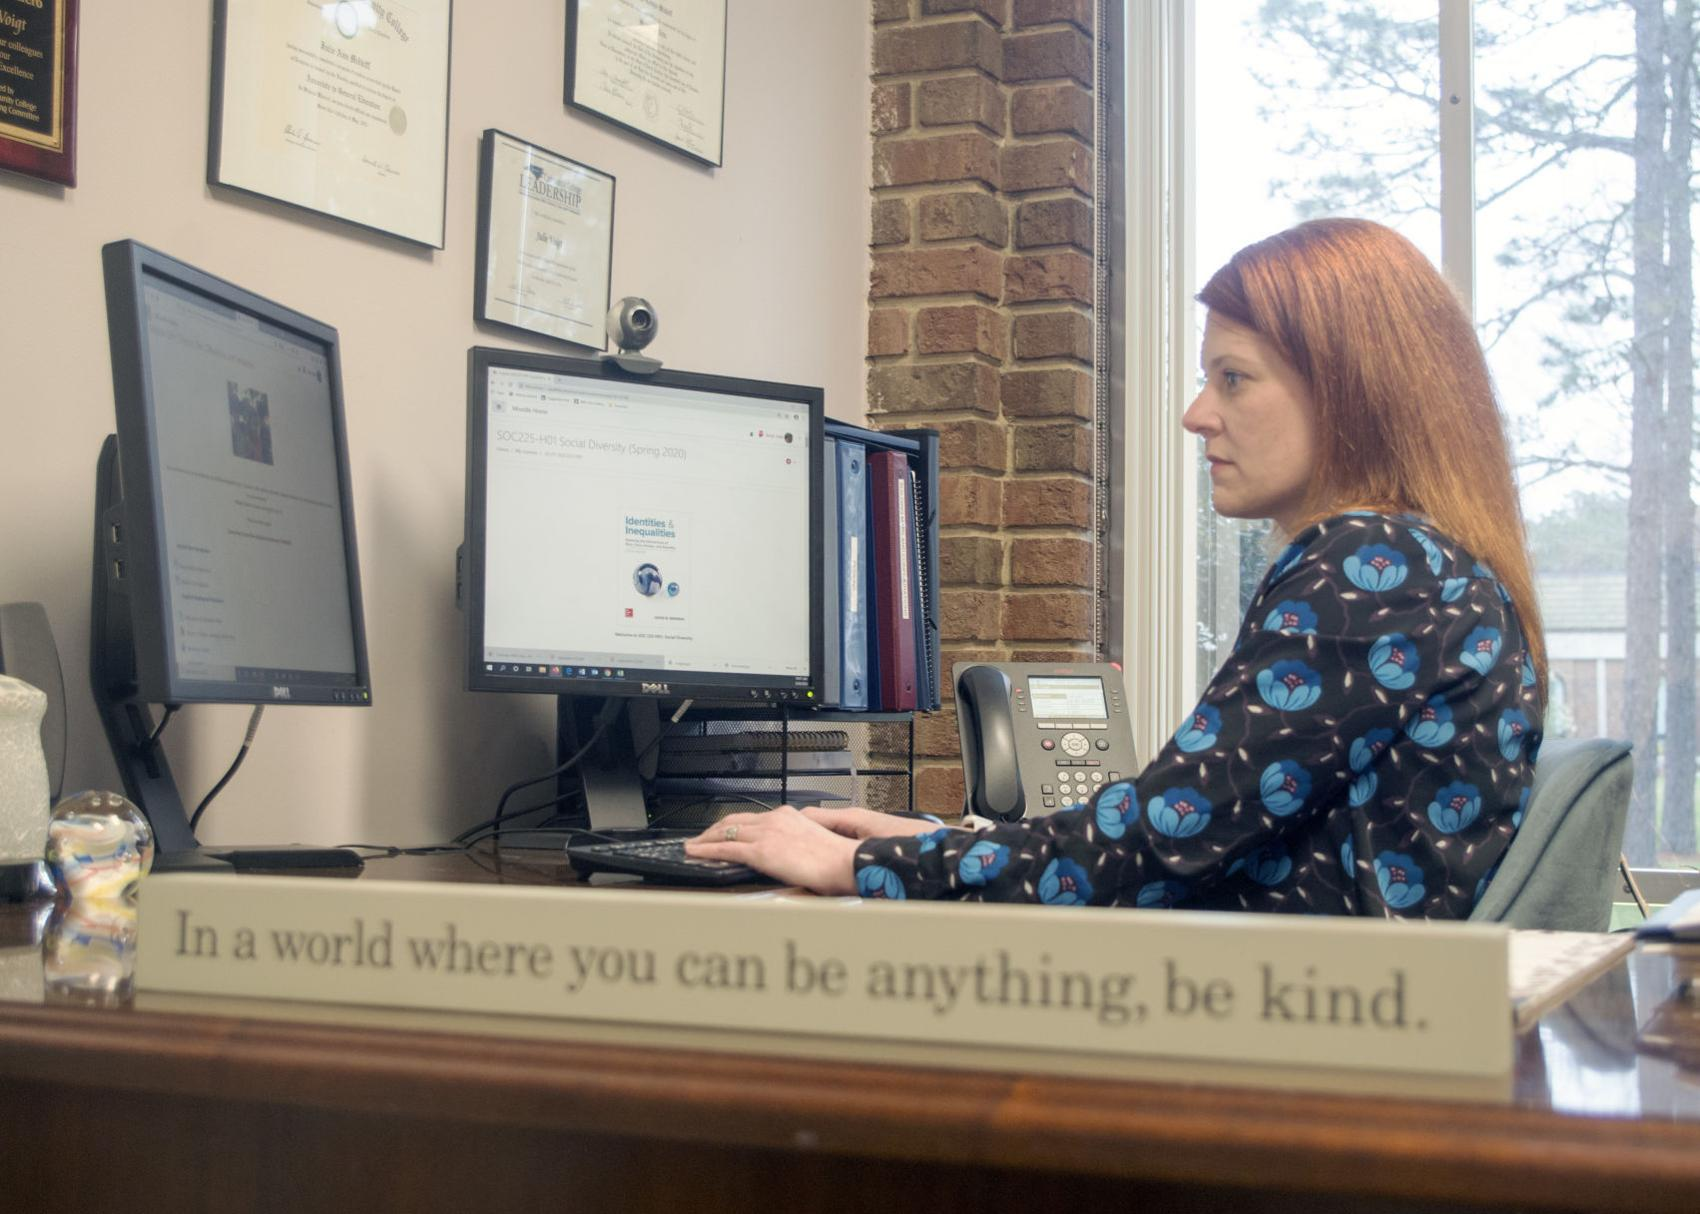 Classes Resume at Sandhills Community College, But From Afar